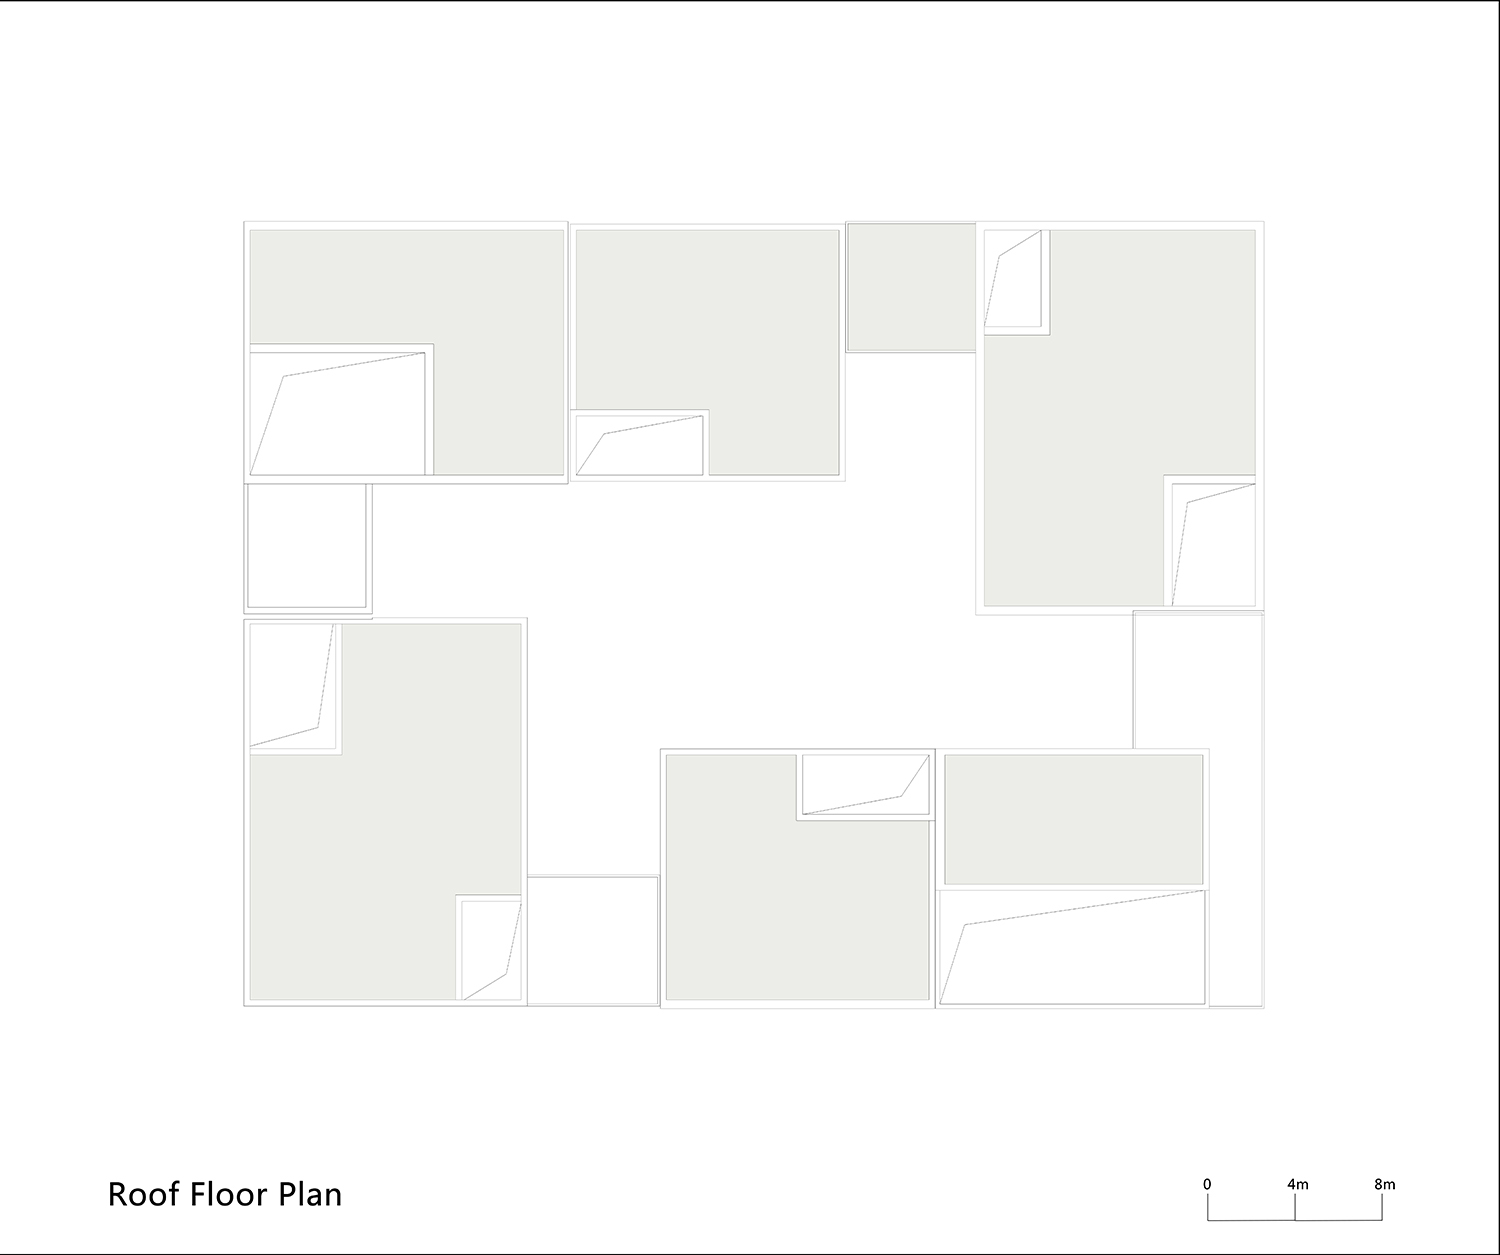 Roof Floor Plan of One Building WSP ARCHITECTS}